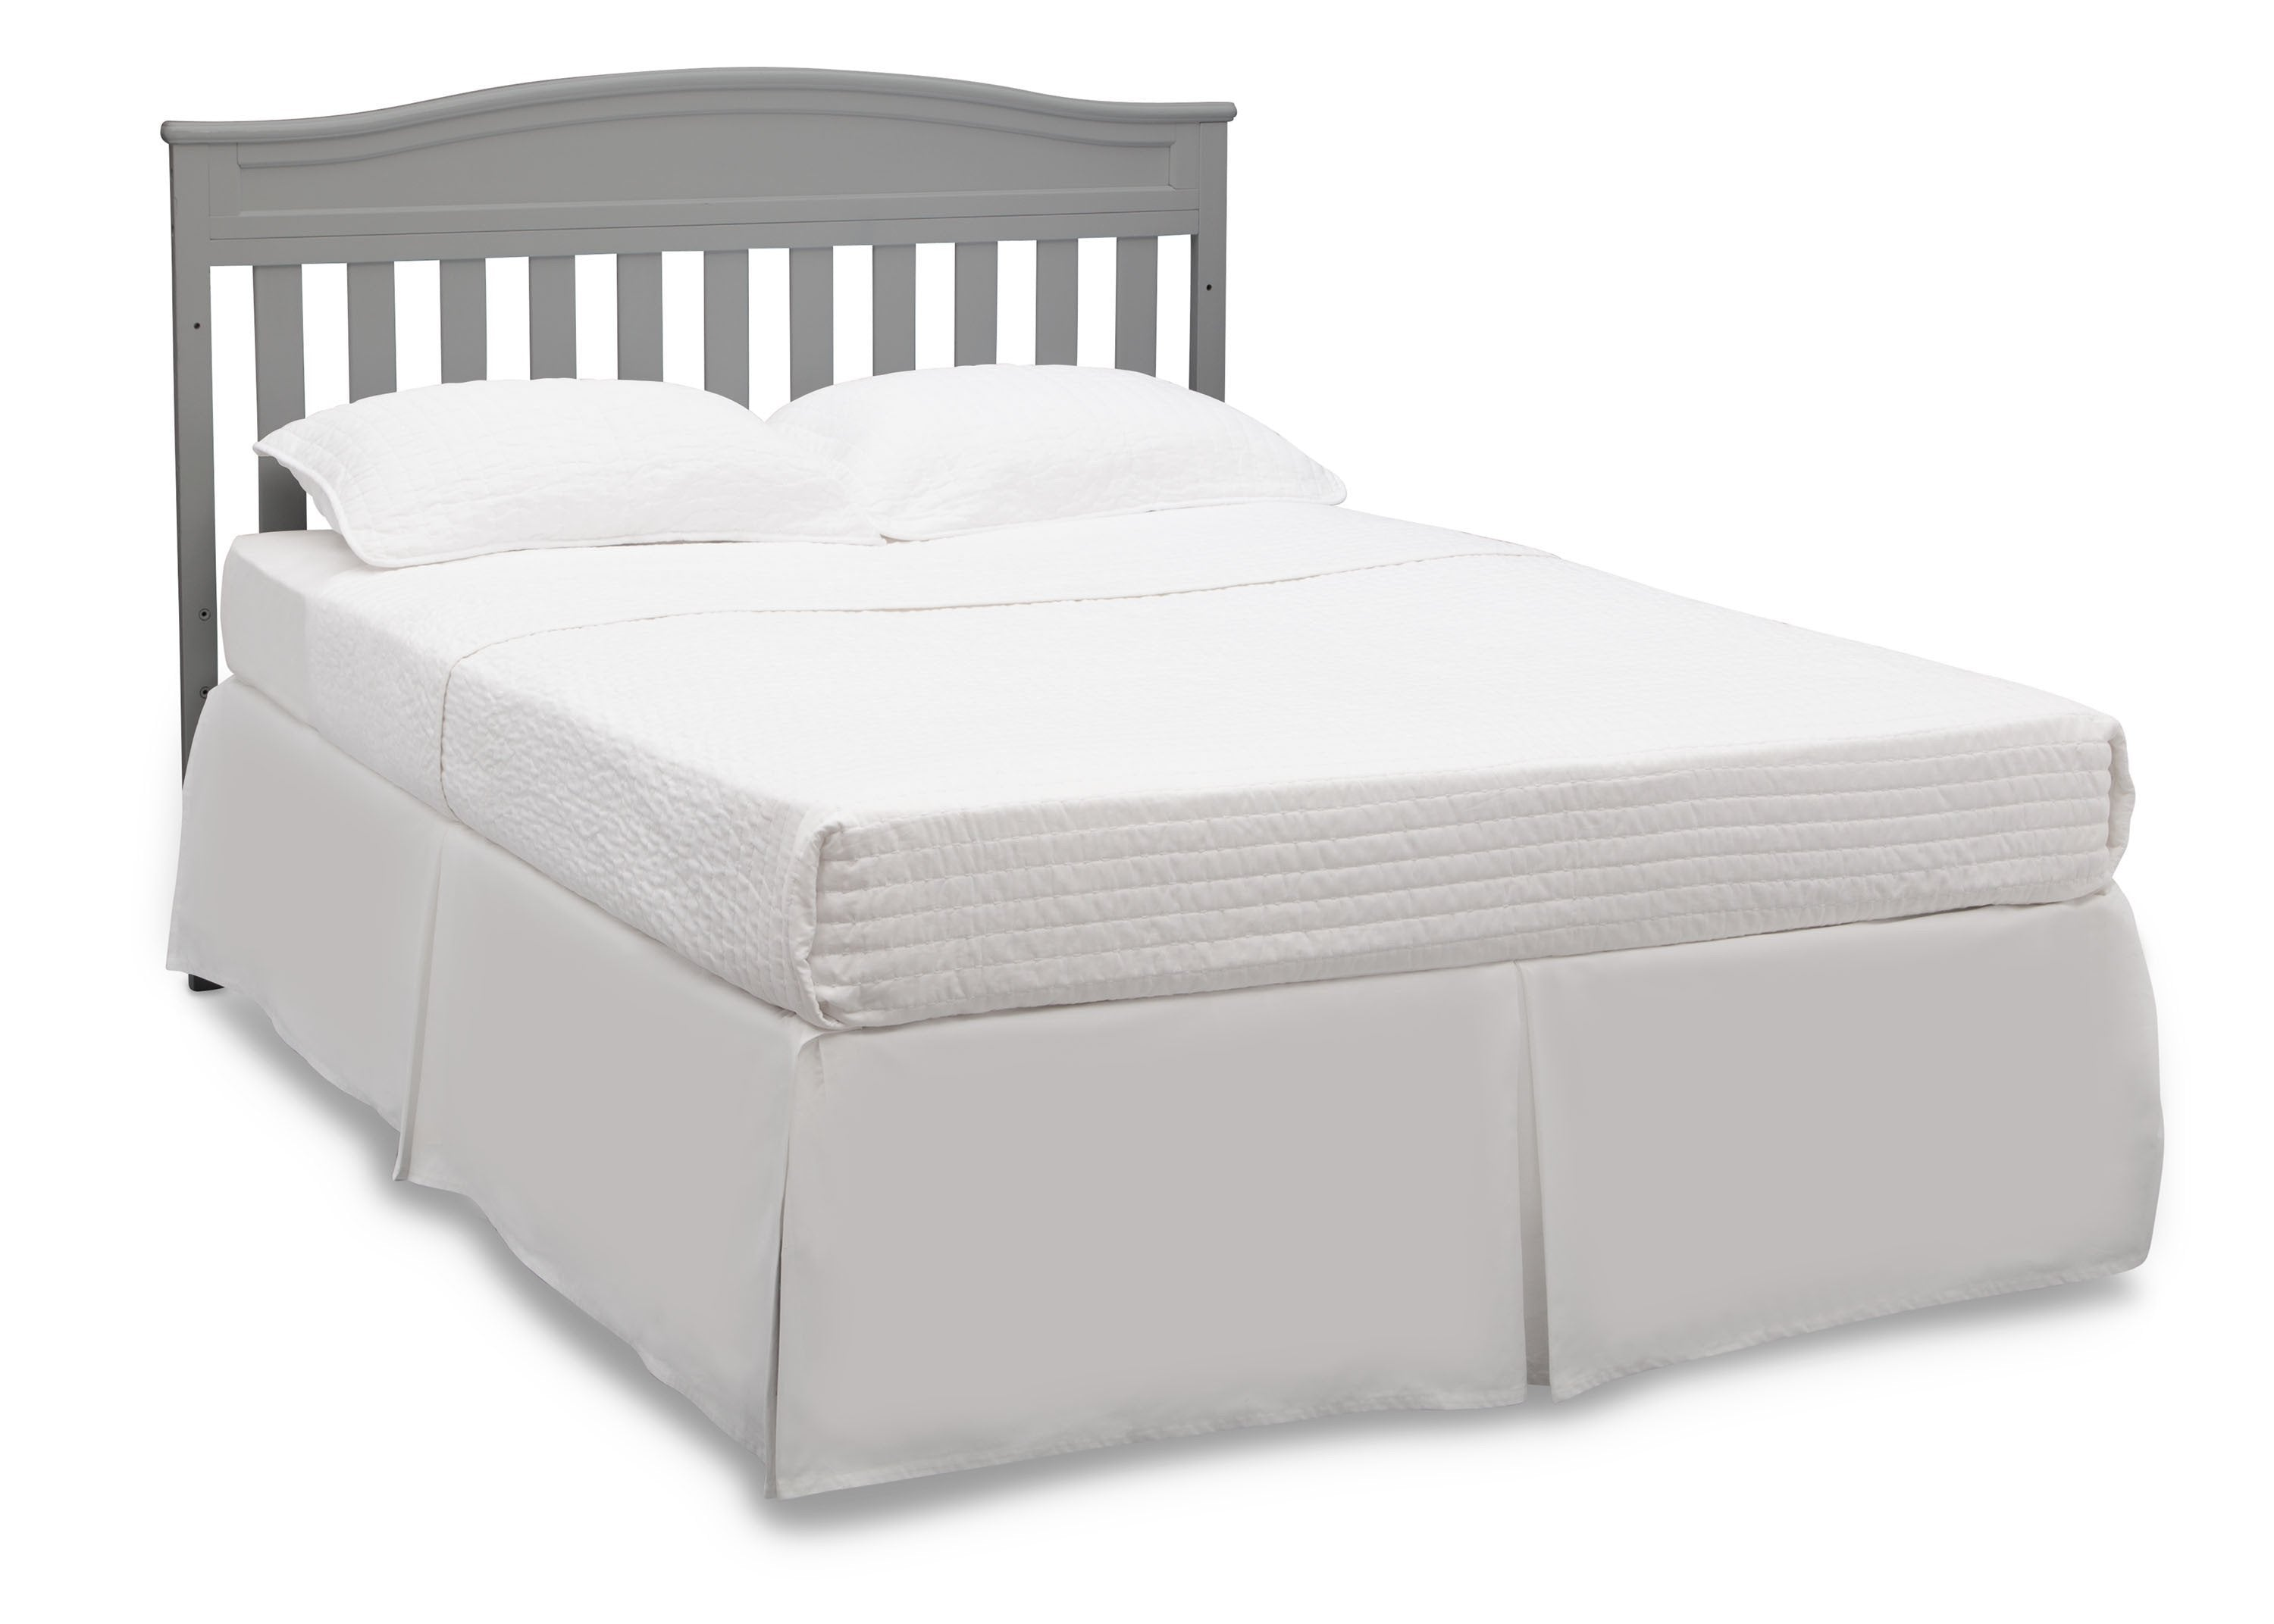 Modest Full Sized Bed Decoration